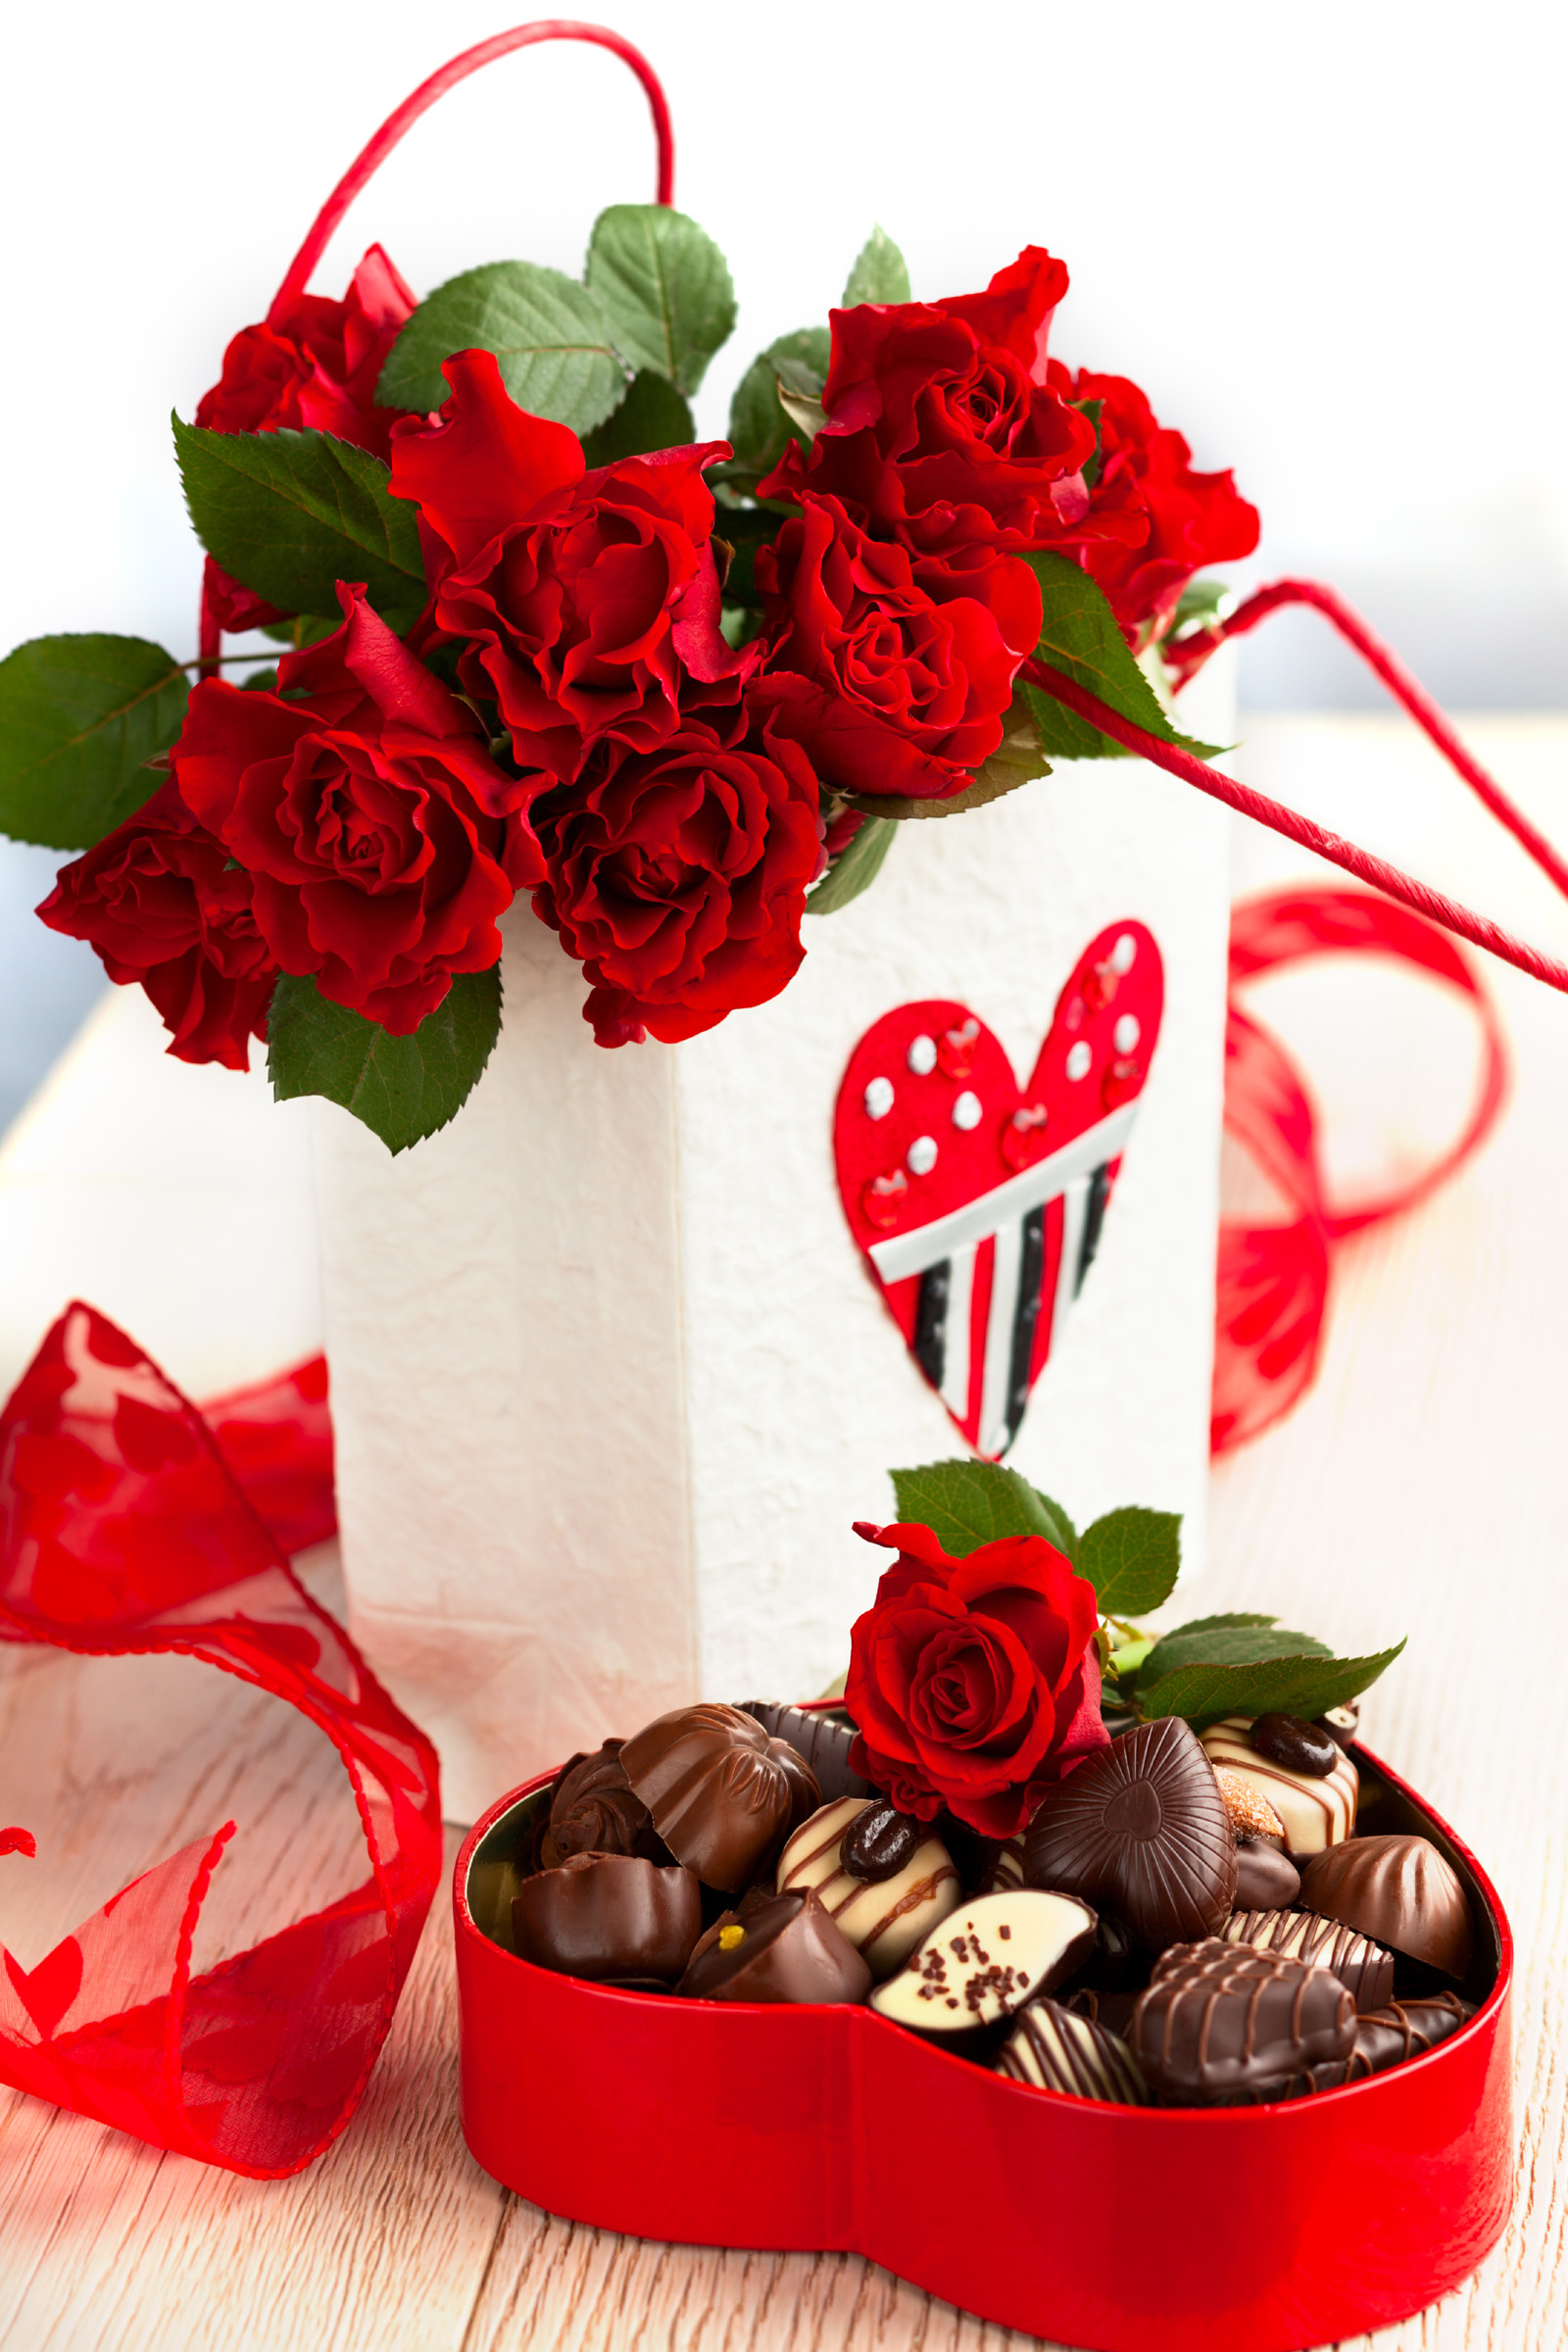 Red roses and chocolate gifts 51566